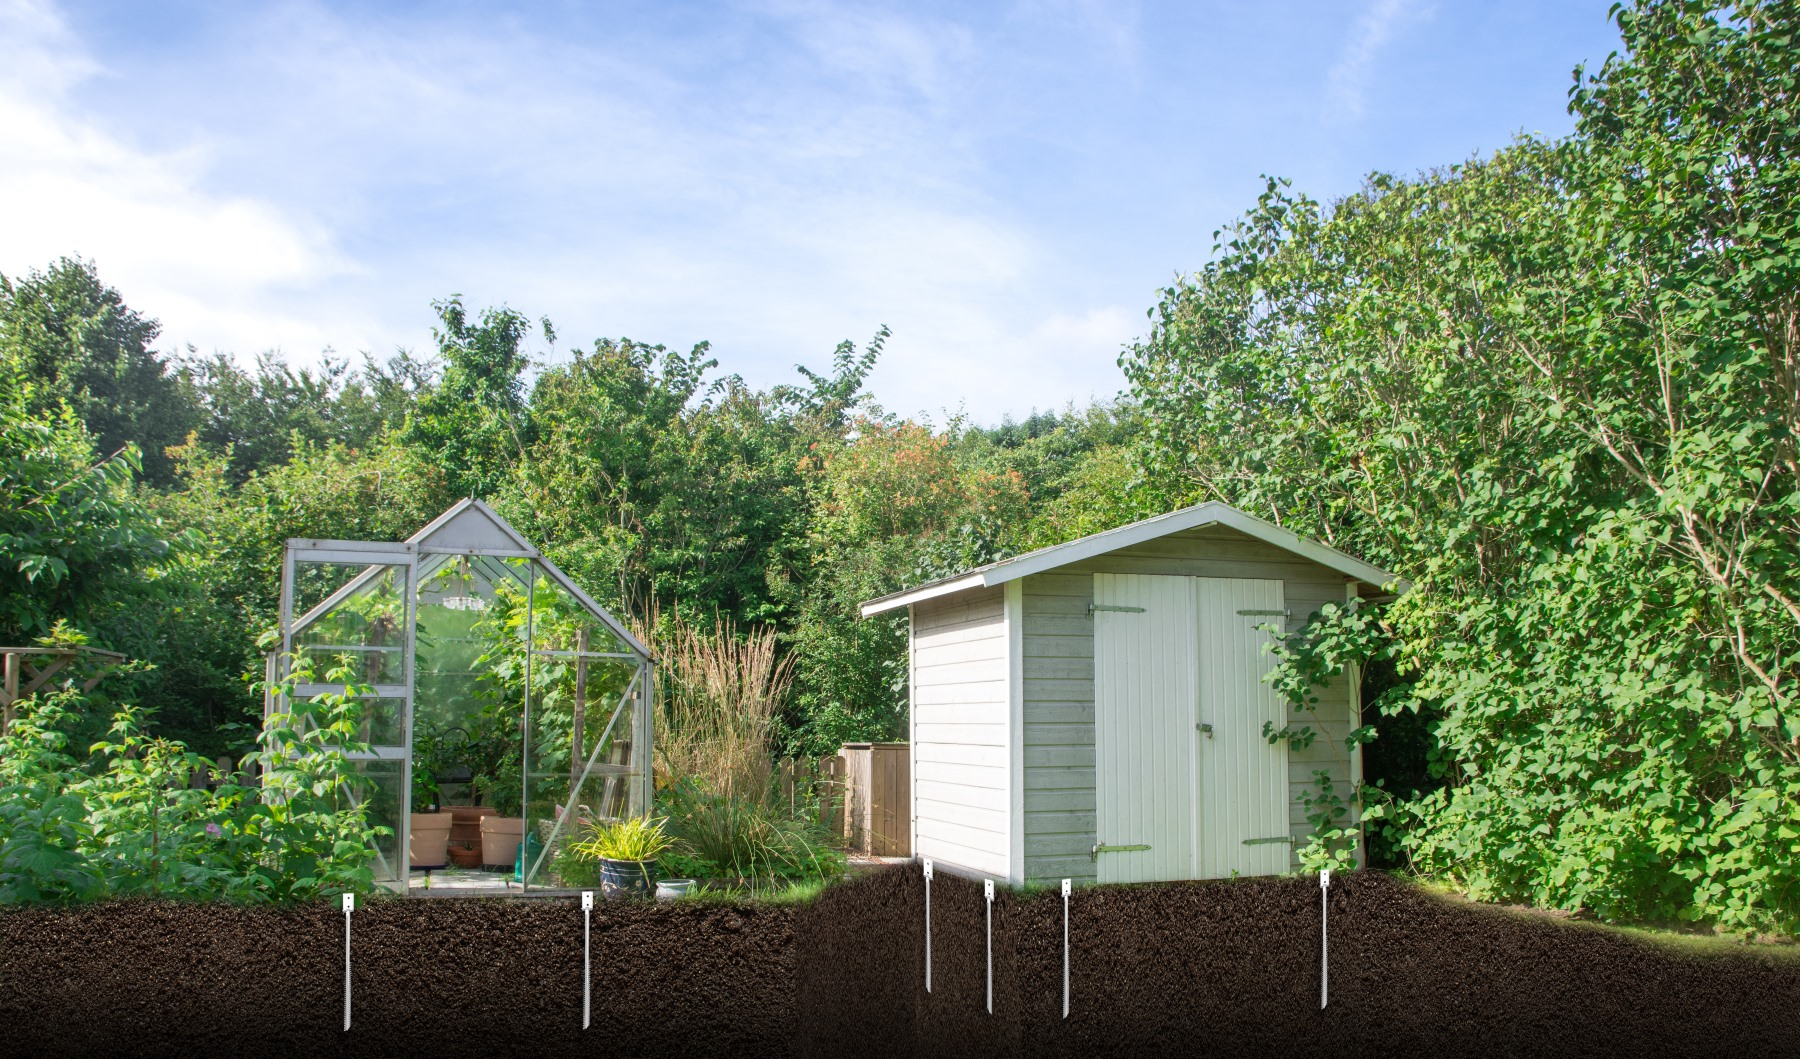 shed-greenhouse-anchors.jpg